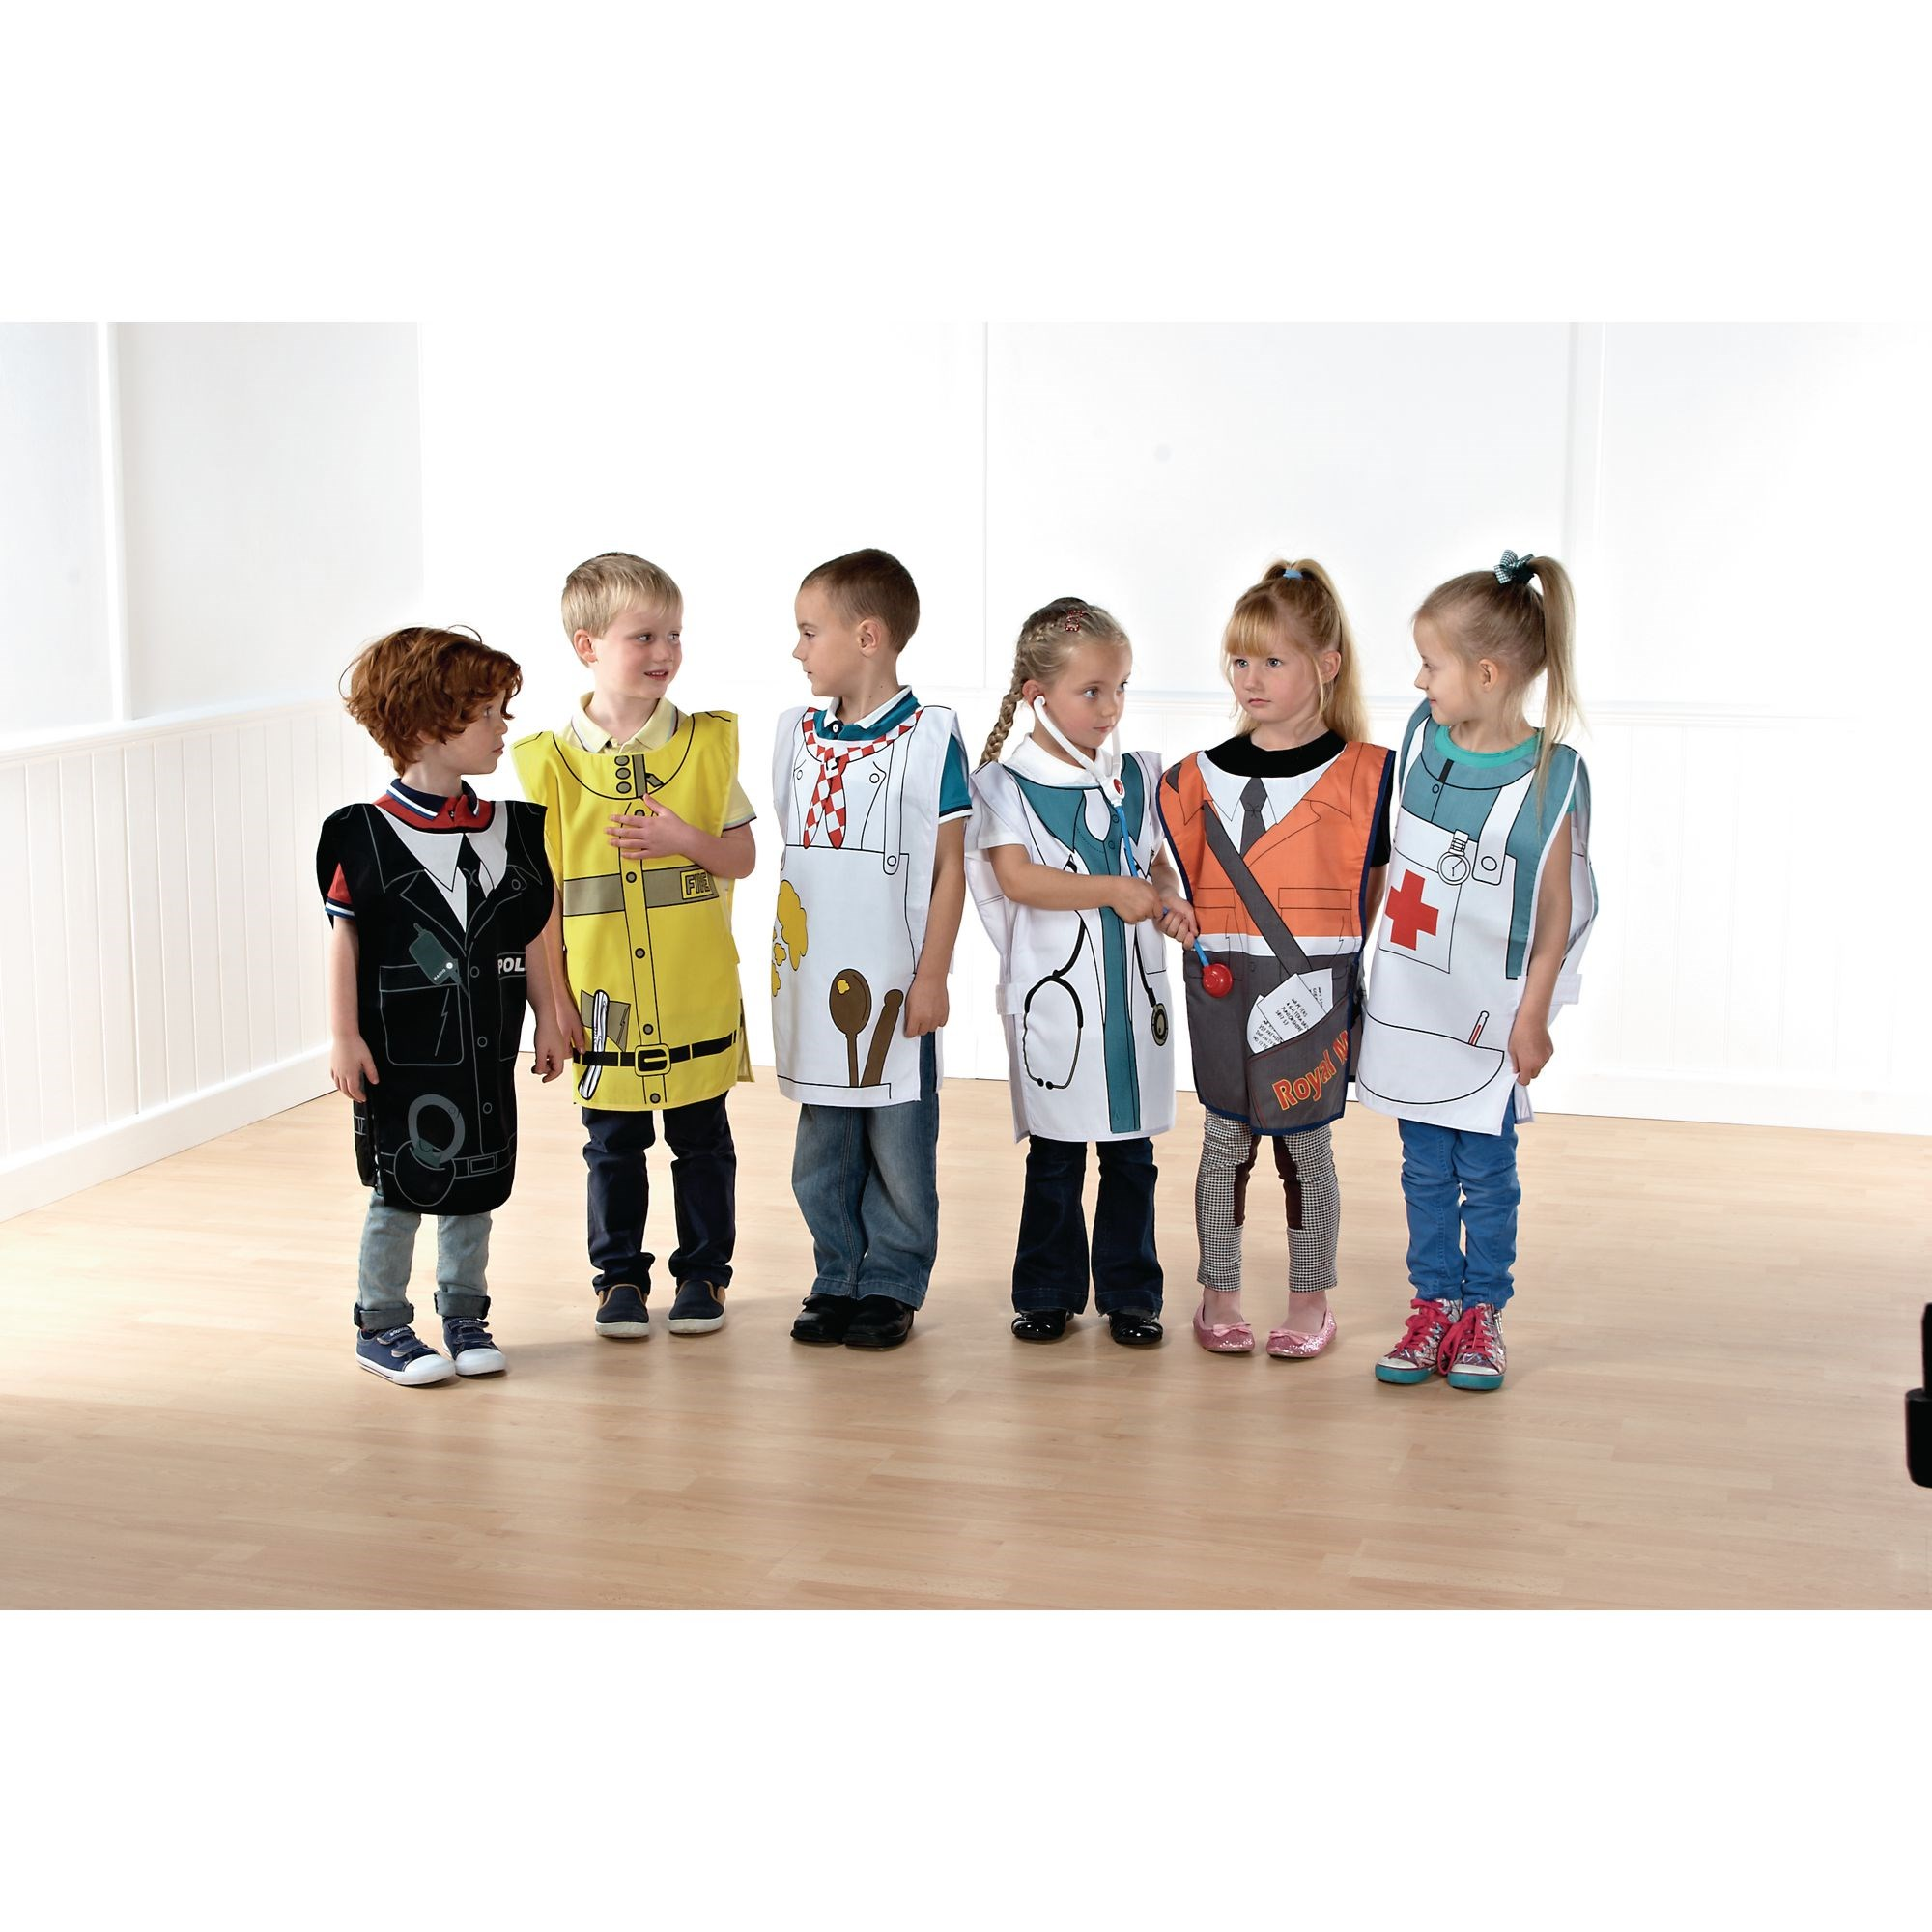 Occupational Tabards Set 1 - Pack of 6